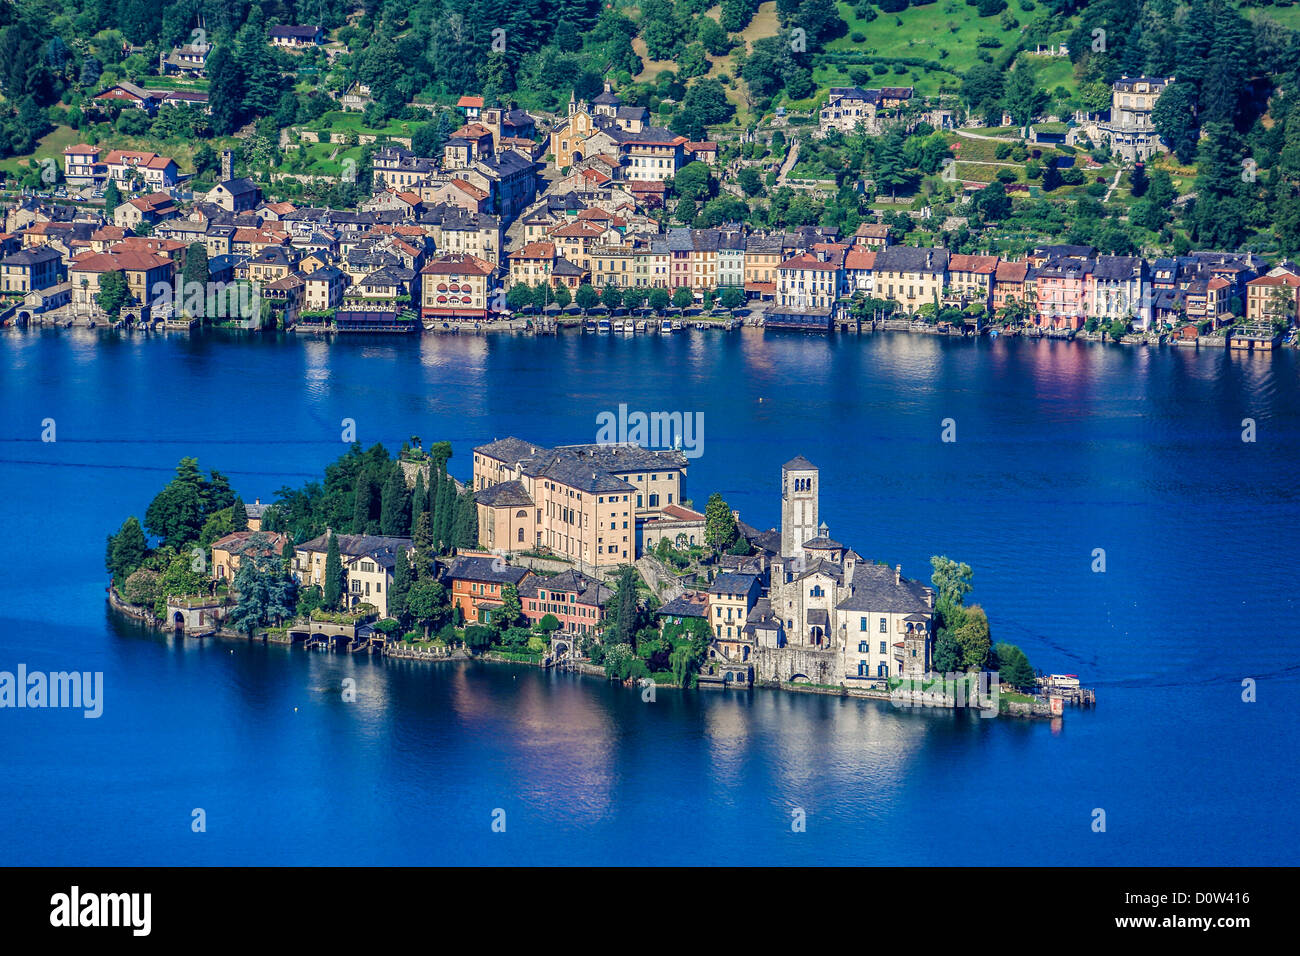 Italy, Europe, travel, Orta, Lake, San Gulio, Island, Piedmont, roofs, forest, tourism, town, - Stock Image